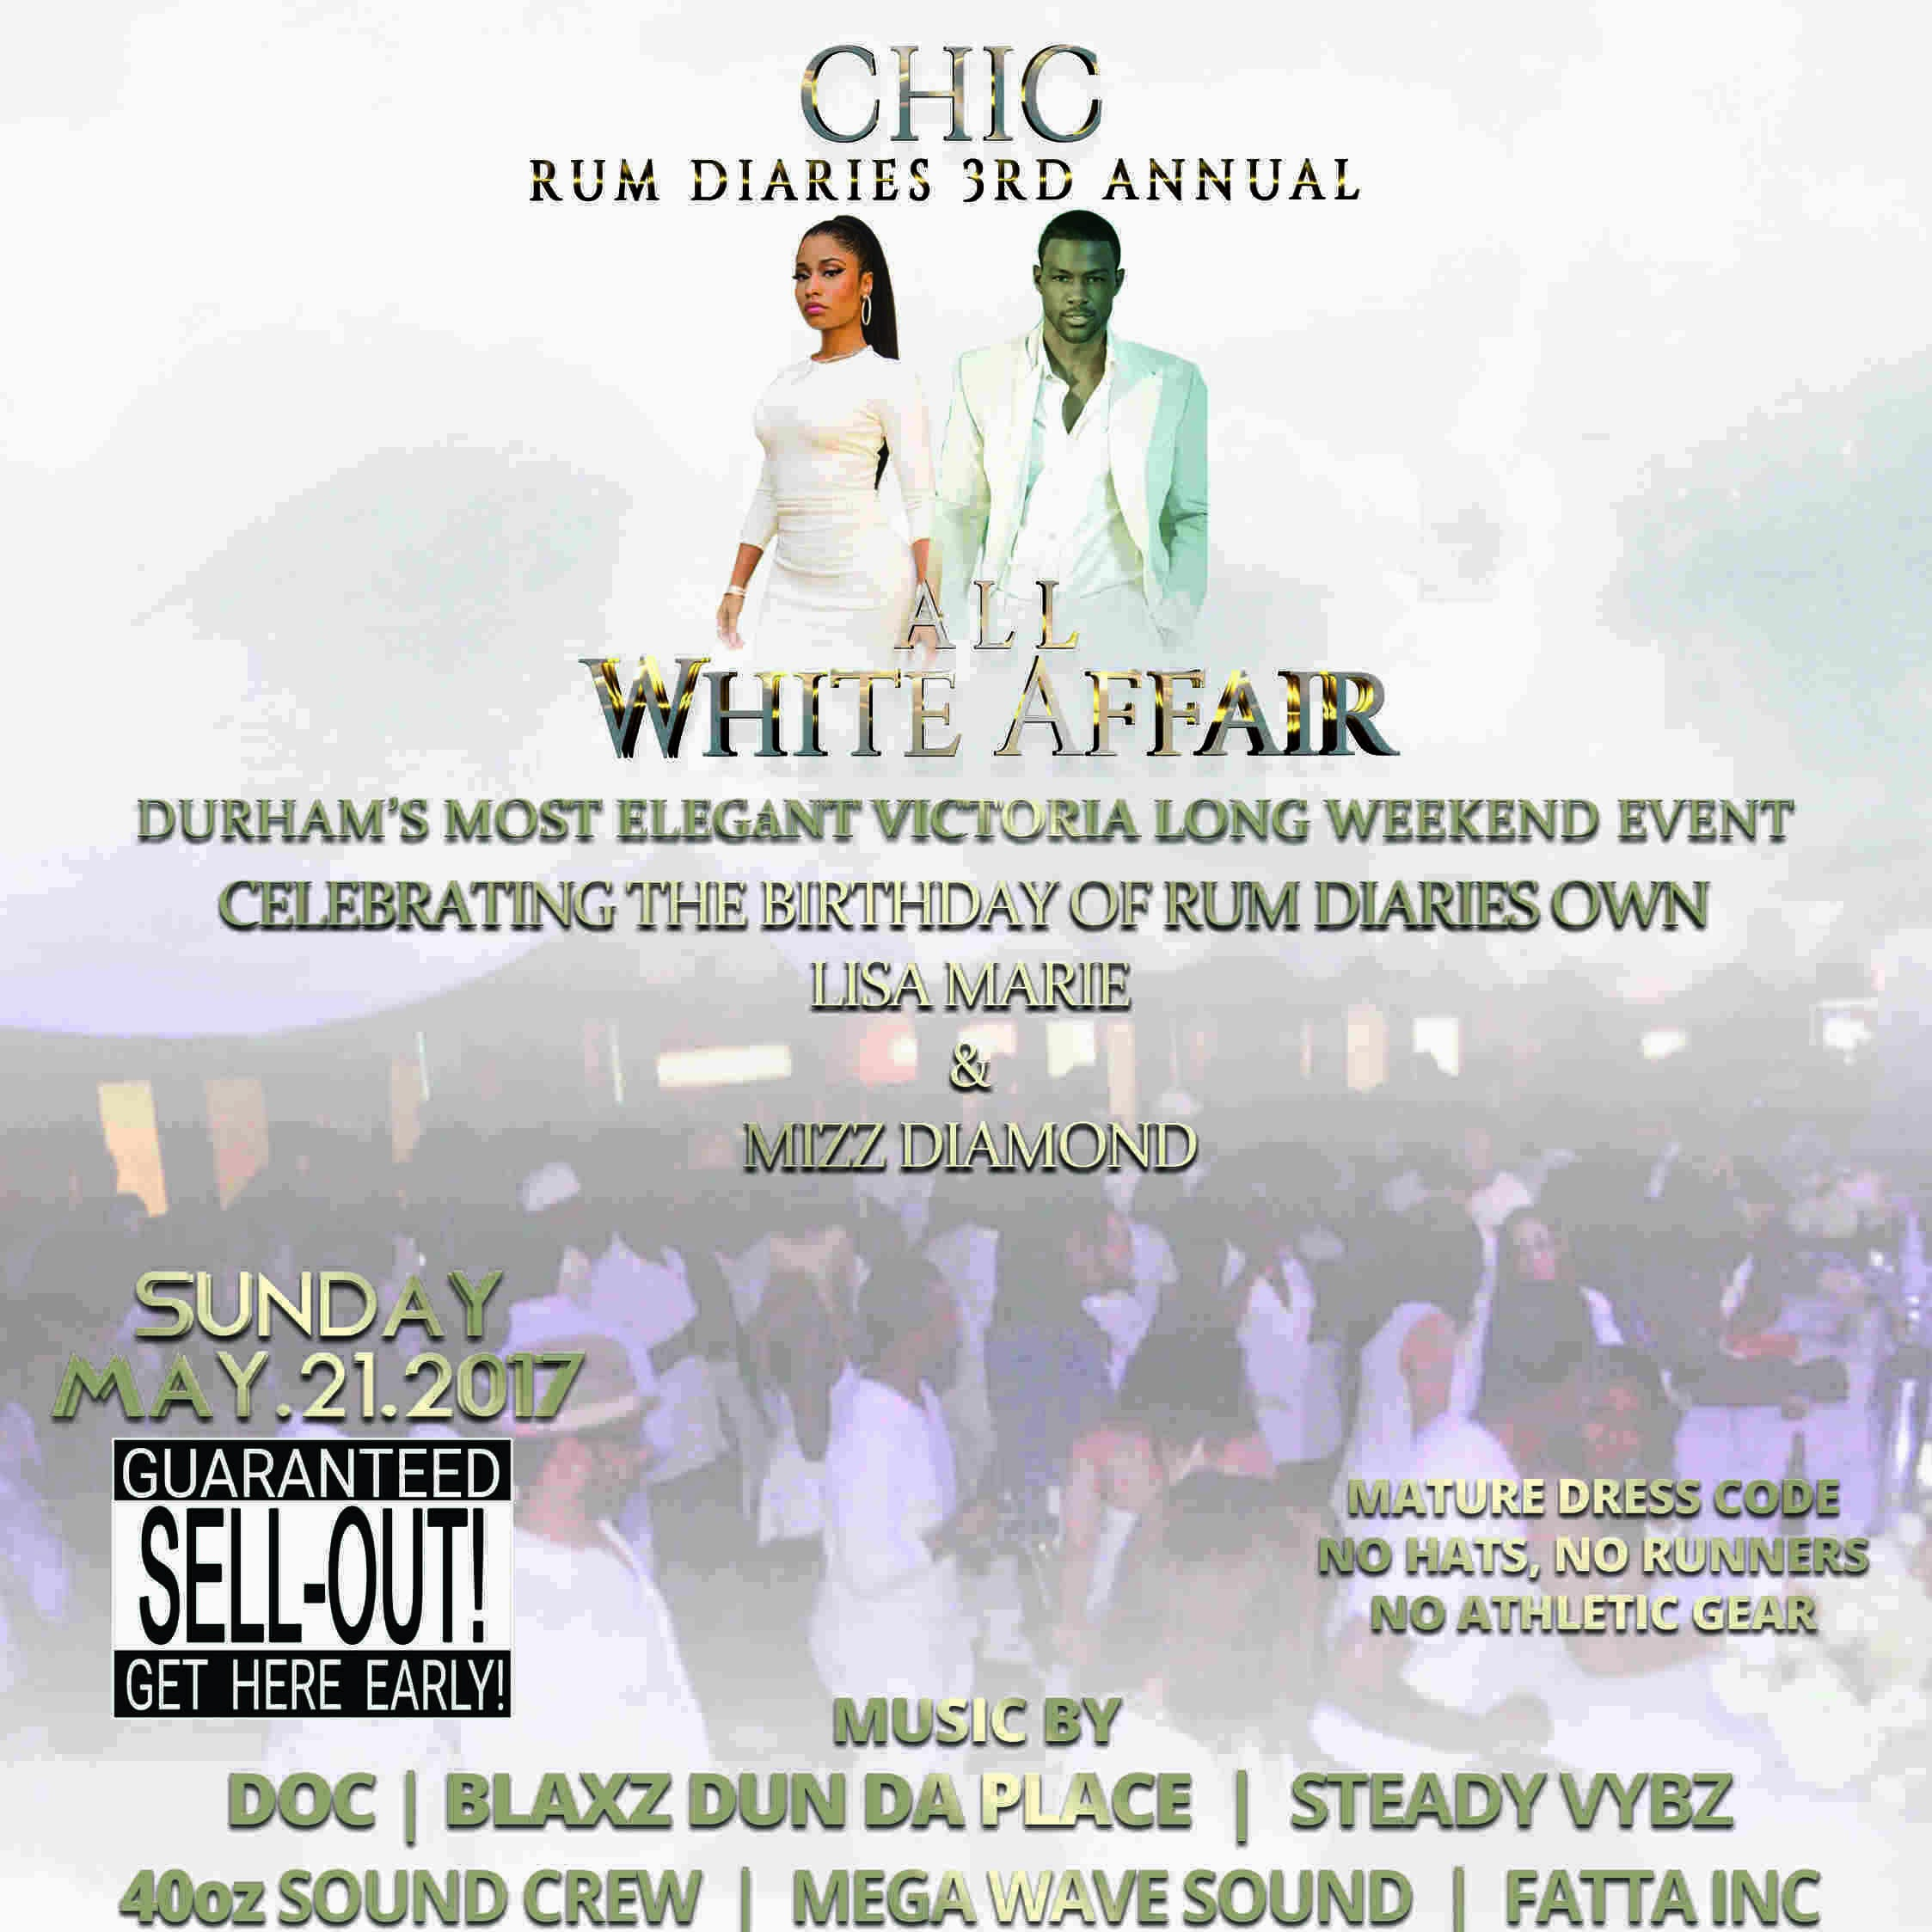 CHIC - RUM DIARIES 3RD ANNUAL WHITE AFFAIR